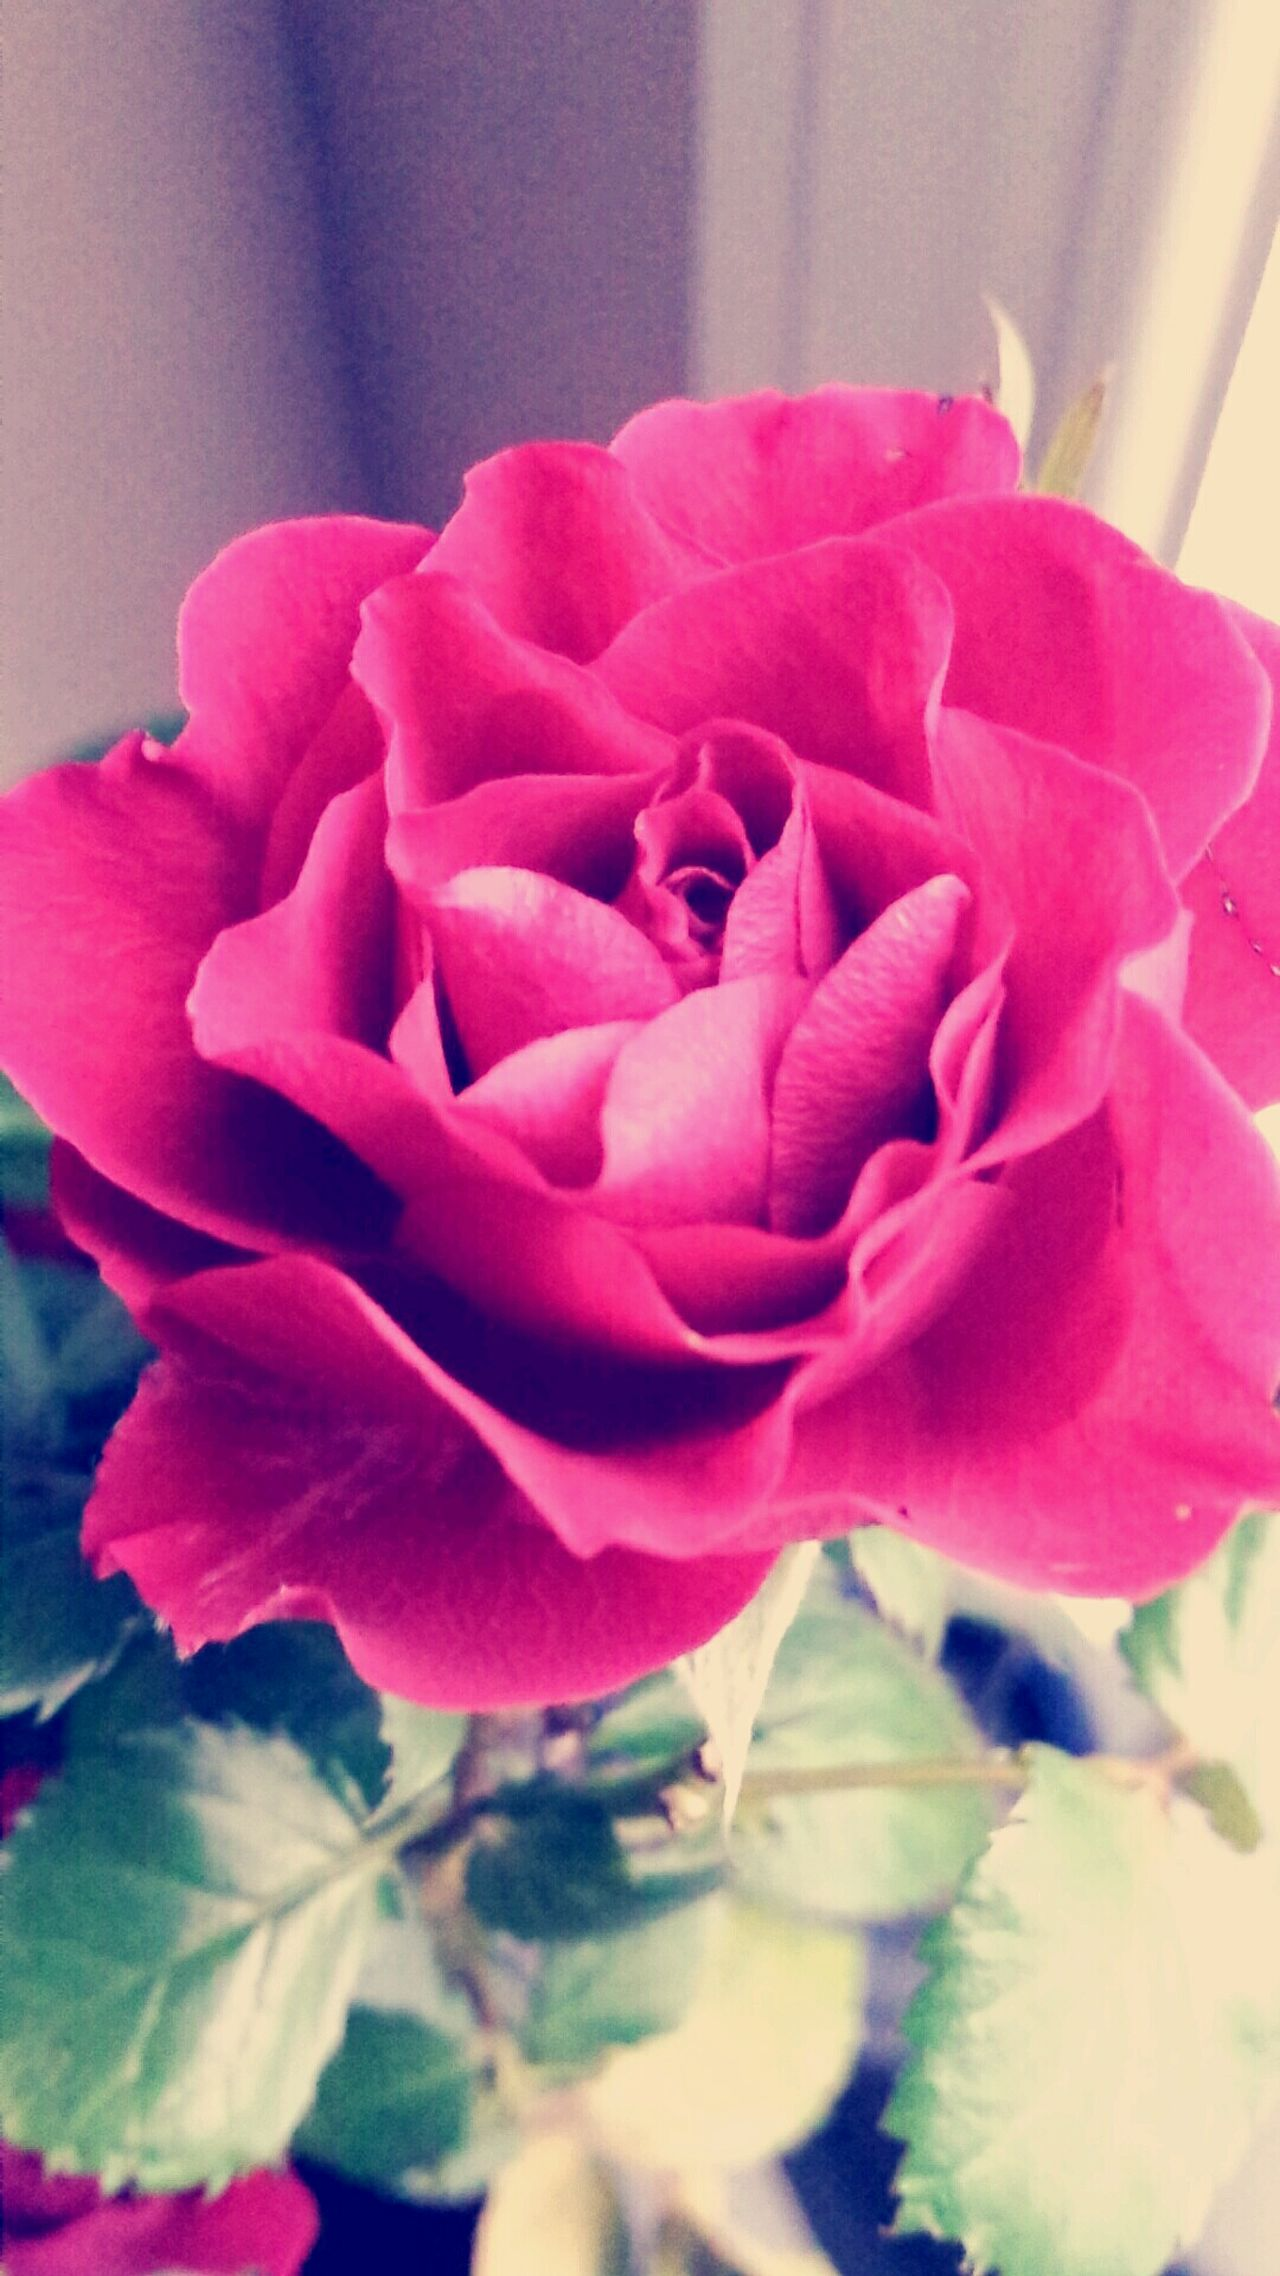 Flower Petal 🌸flower🌸 Red Rose🌹 Rose - Flower Nature Beauty In Nature Freshness Beauty&beast Beautiful